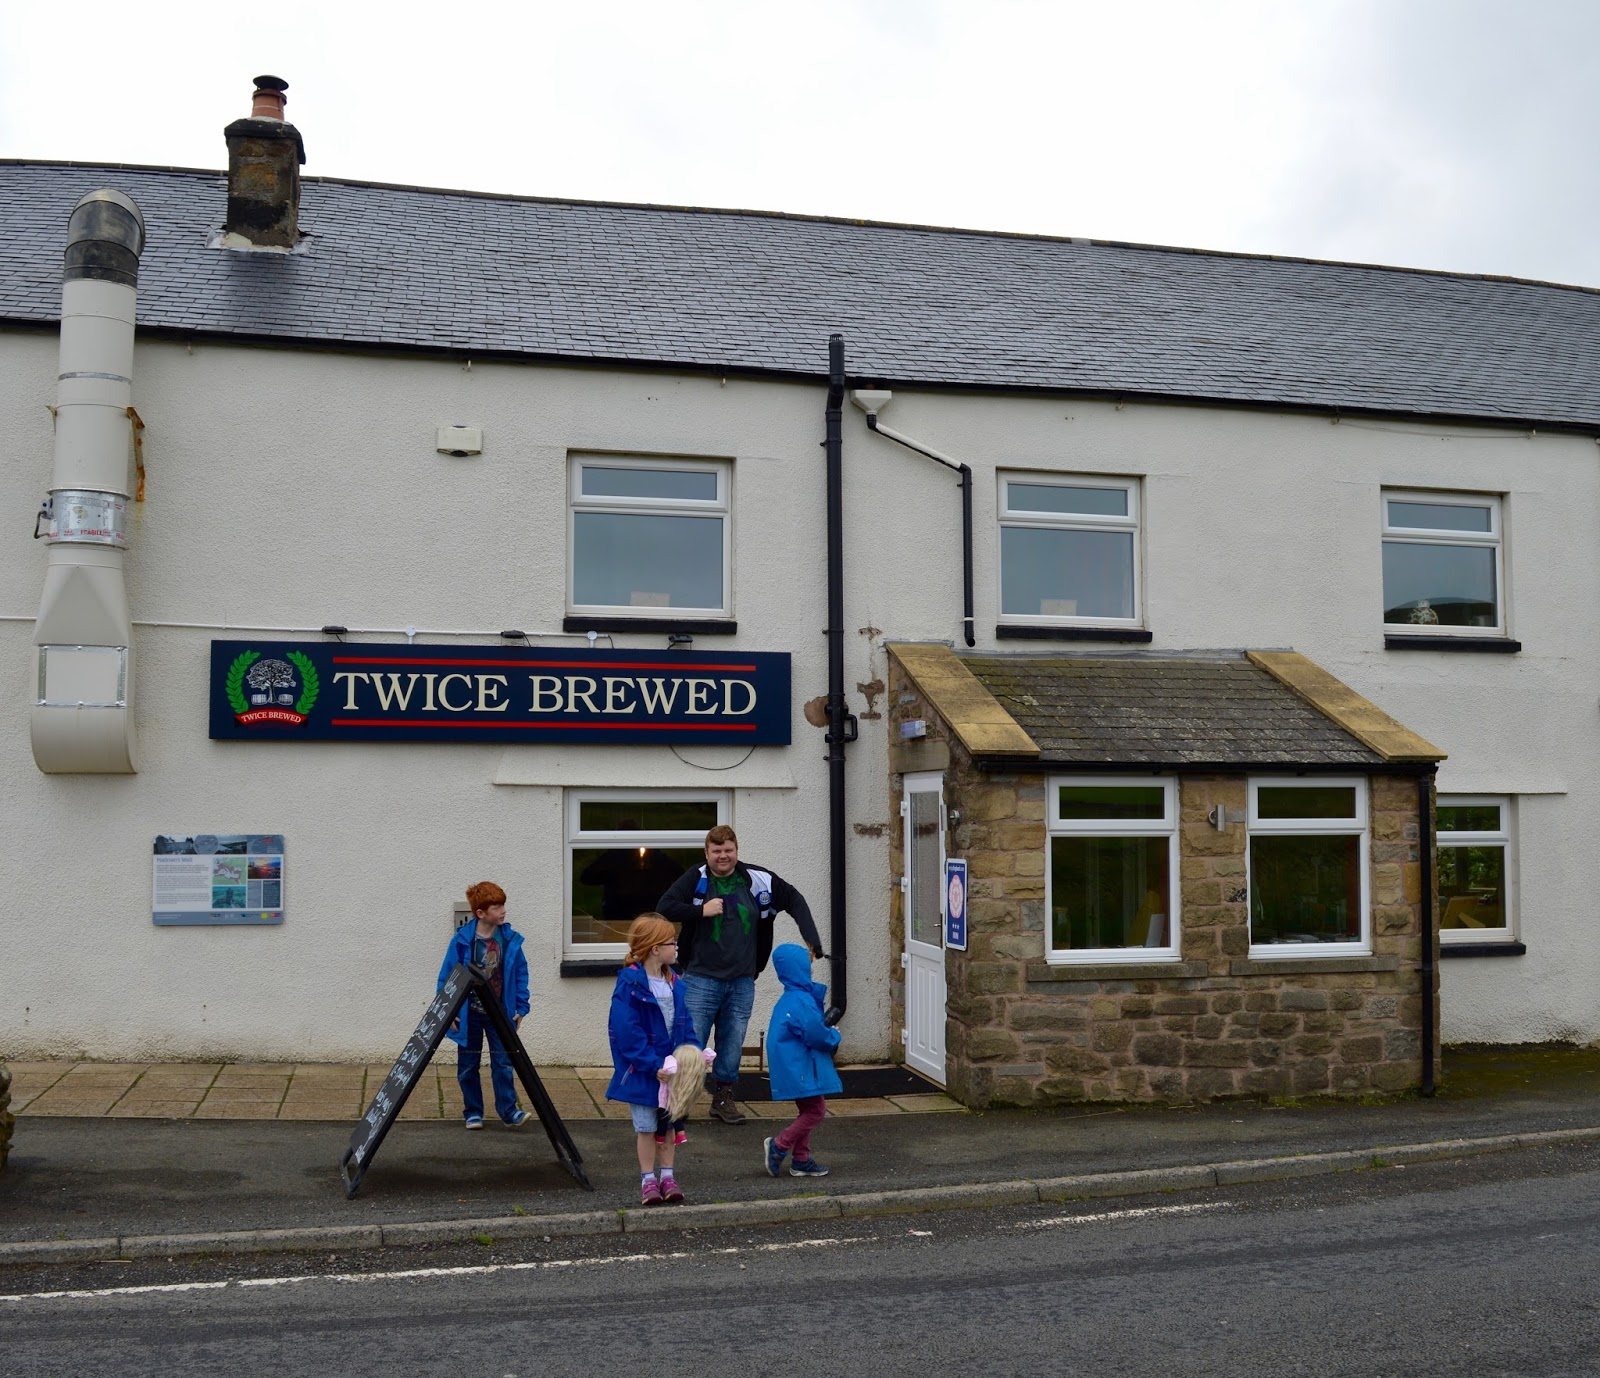 Exploring Hadrian's Wall by Bus with Go North East AD122 - Twice Brewed Pub Review